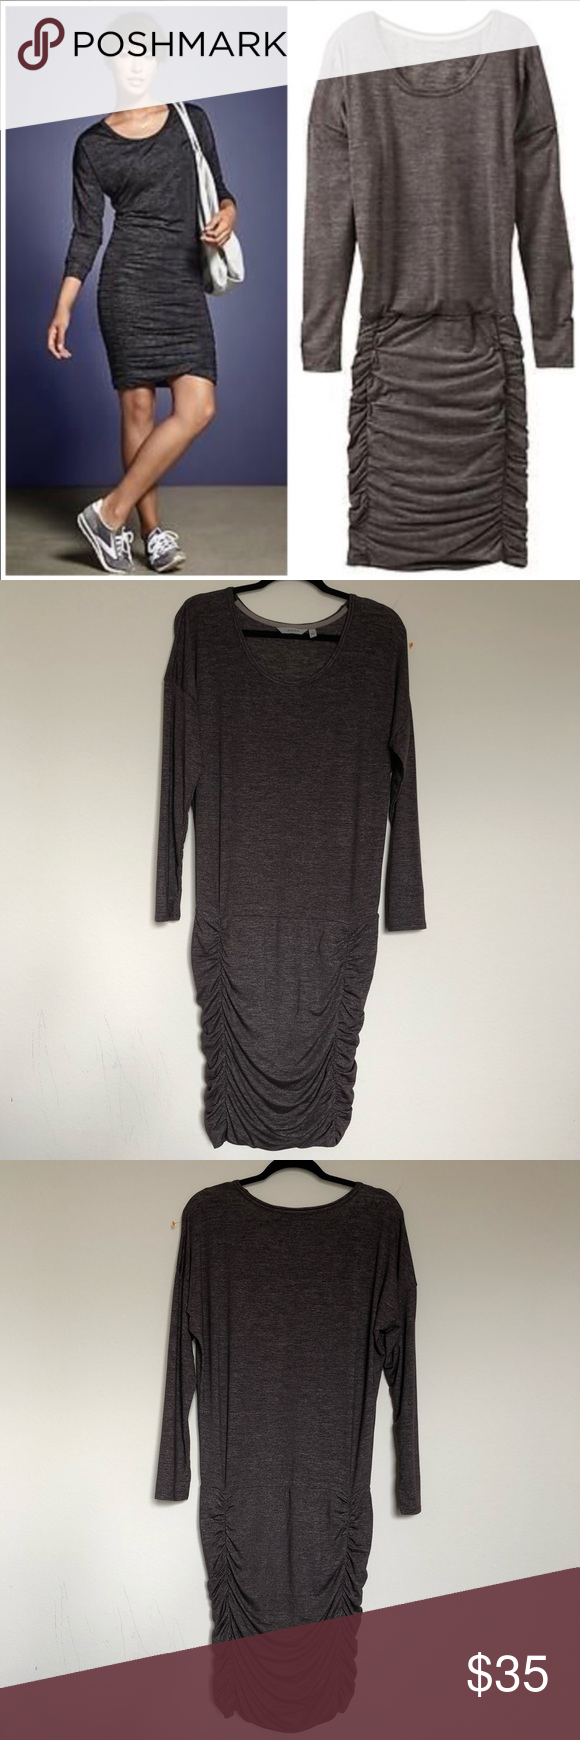 9d87e8656114 ATHLETA Long Sleeve Tulip Dress Great condition Approximately measurements  laying flat 🔹pit to pit 20 inches 🔹waist 15 inches 🔹38 inches long  Athleta ...